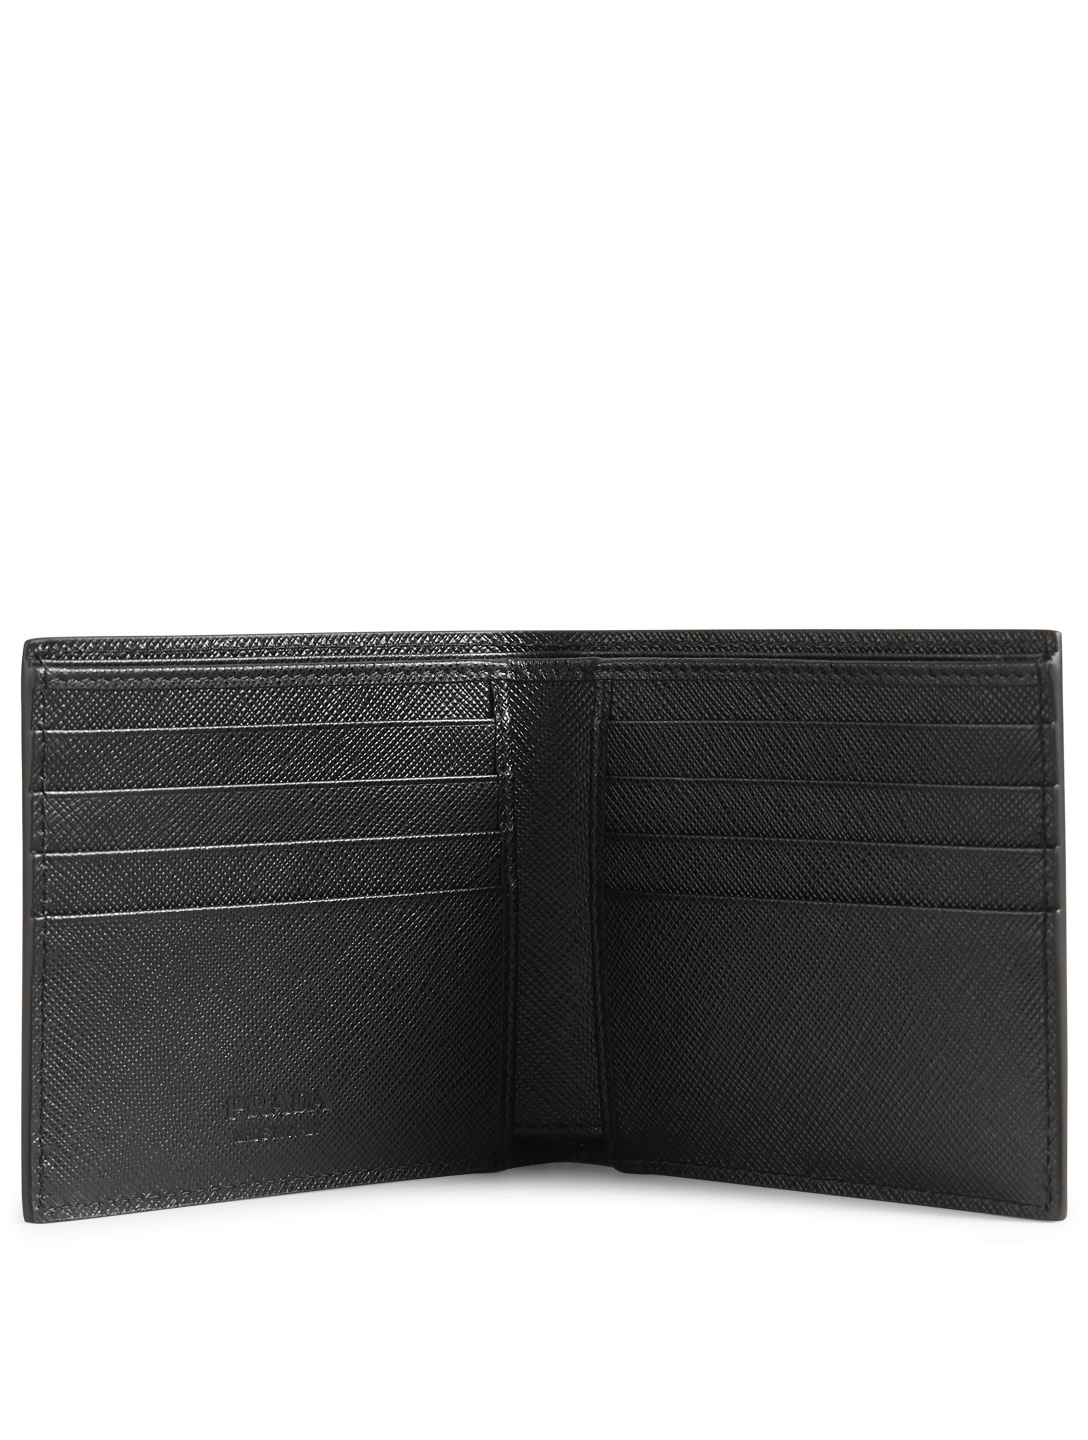 PRADA Printed Saffiano Leather Bifold Wallet Designers Black